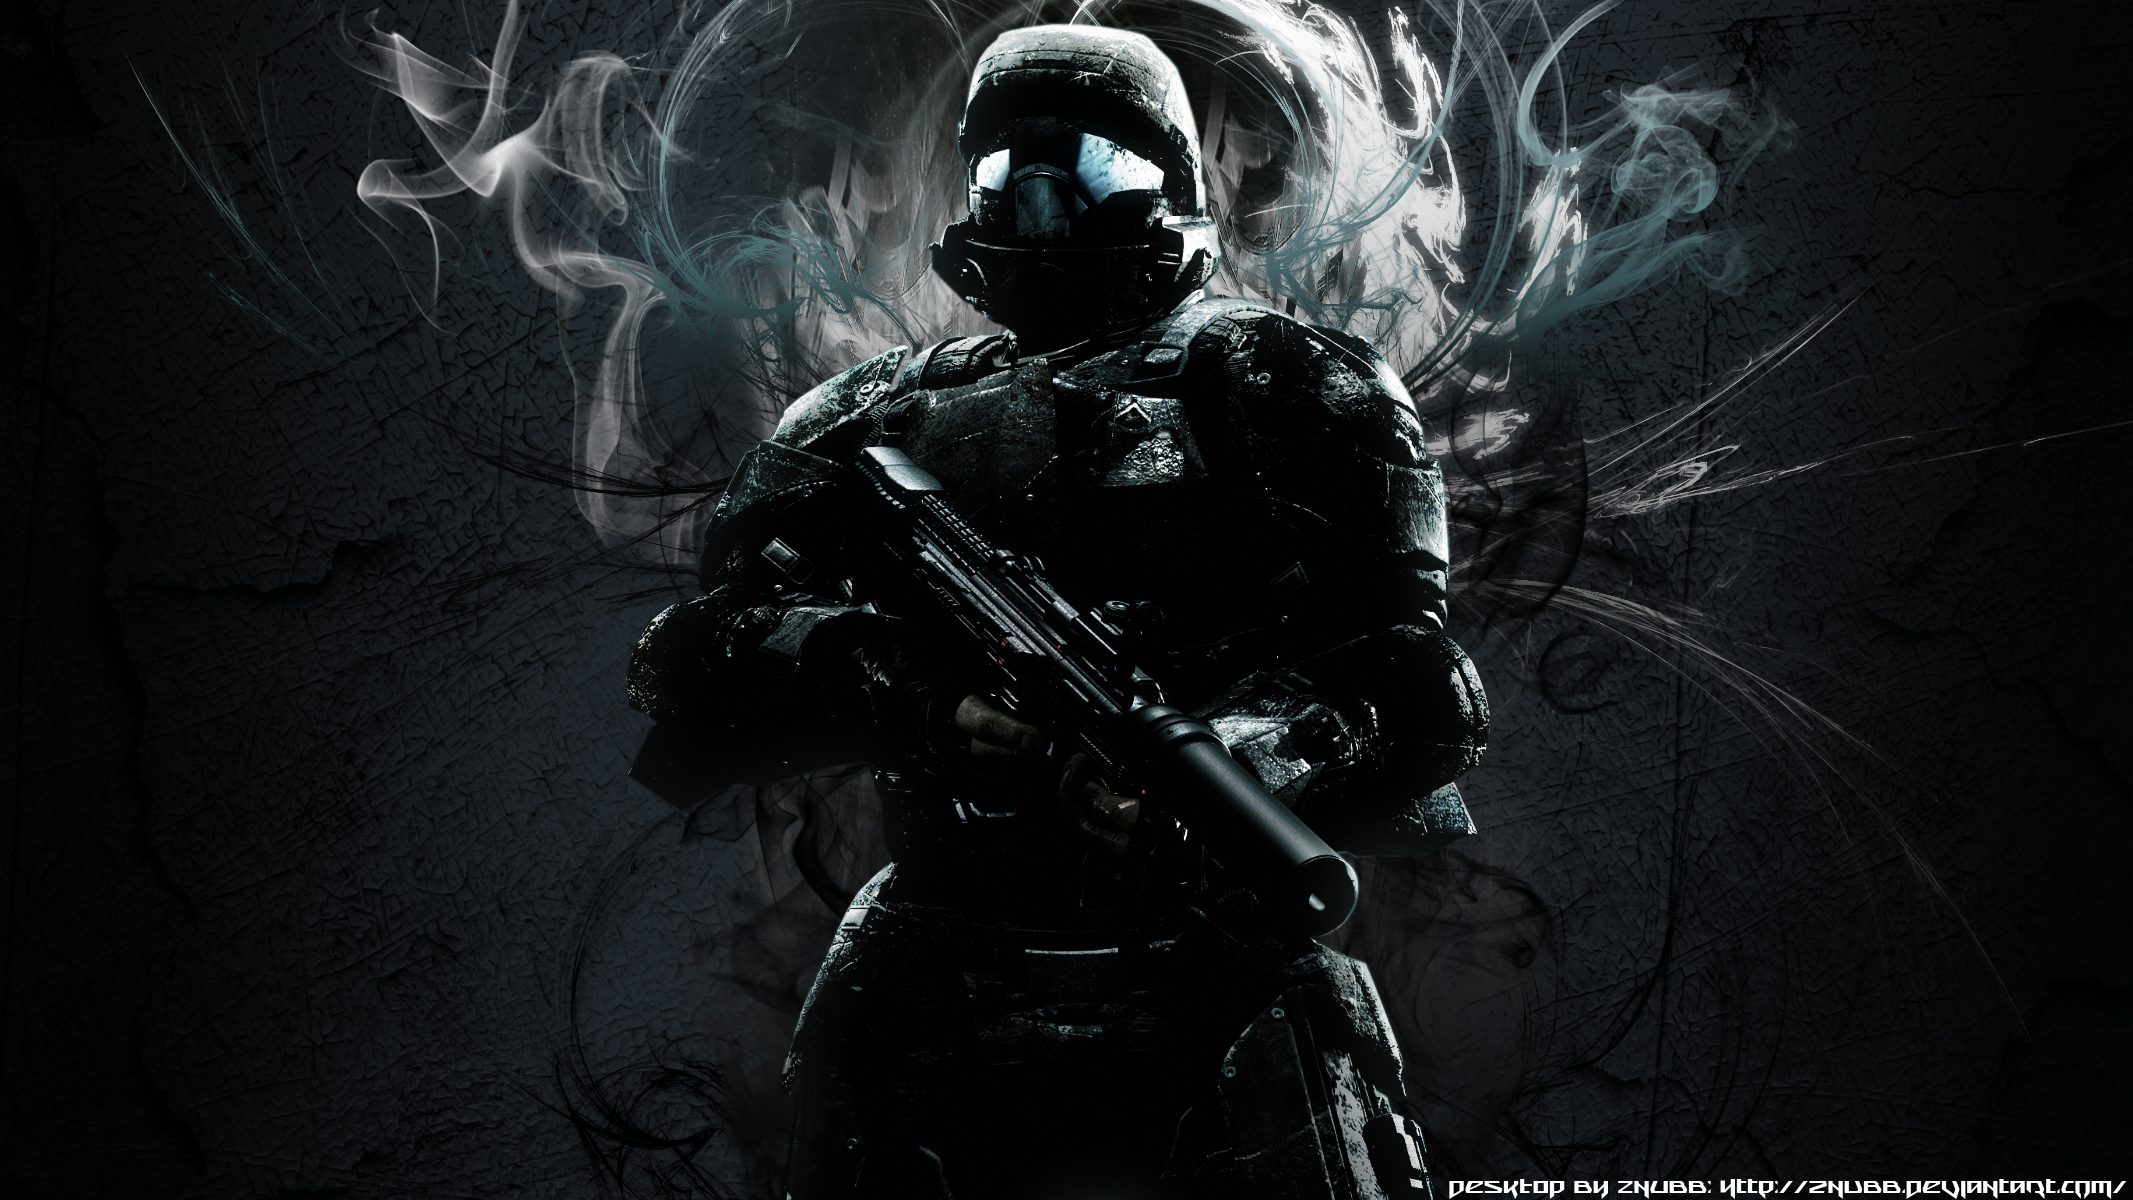 Free Download Halo 3 Odst Wallpaper By Znubbjpg 2133x1200 For